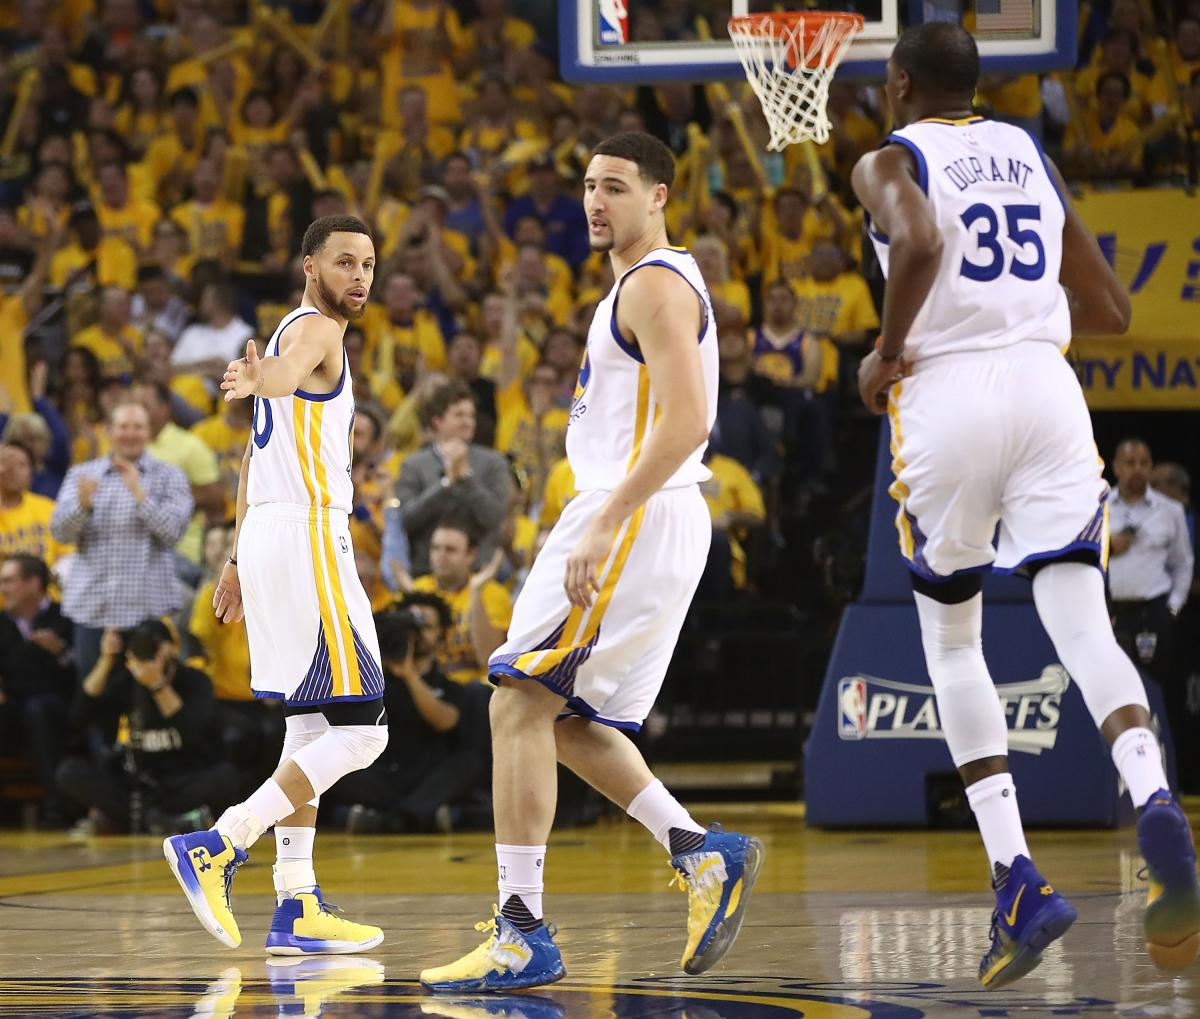 Golden State Warriors Record Without Steph Curry: Warriors Injury News: When Steph Curry, Kevin Durant, Klay